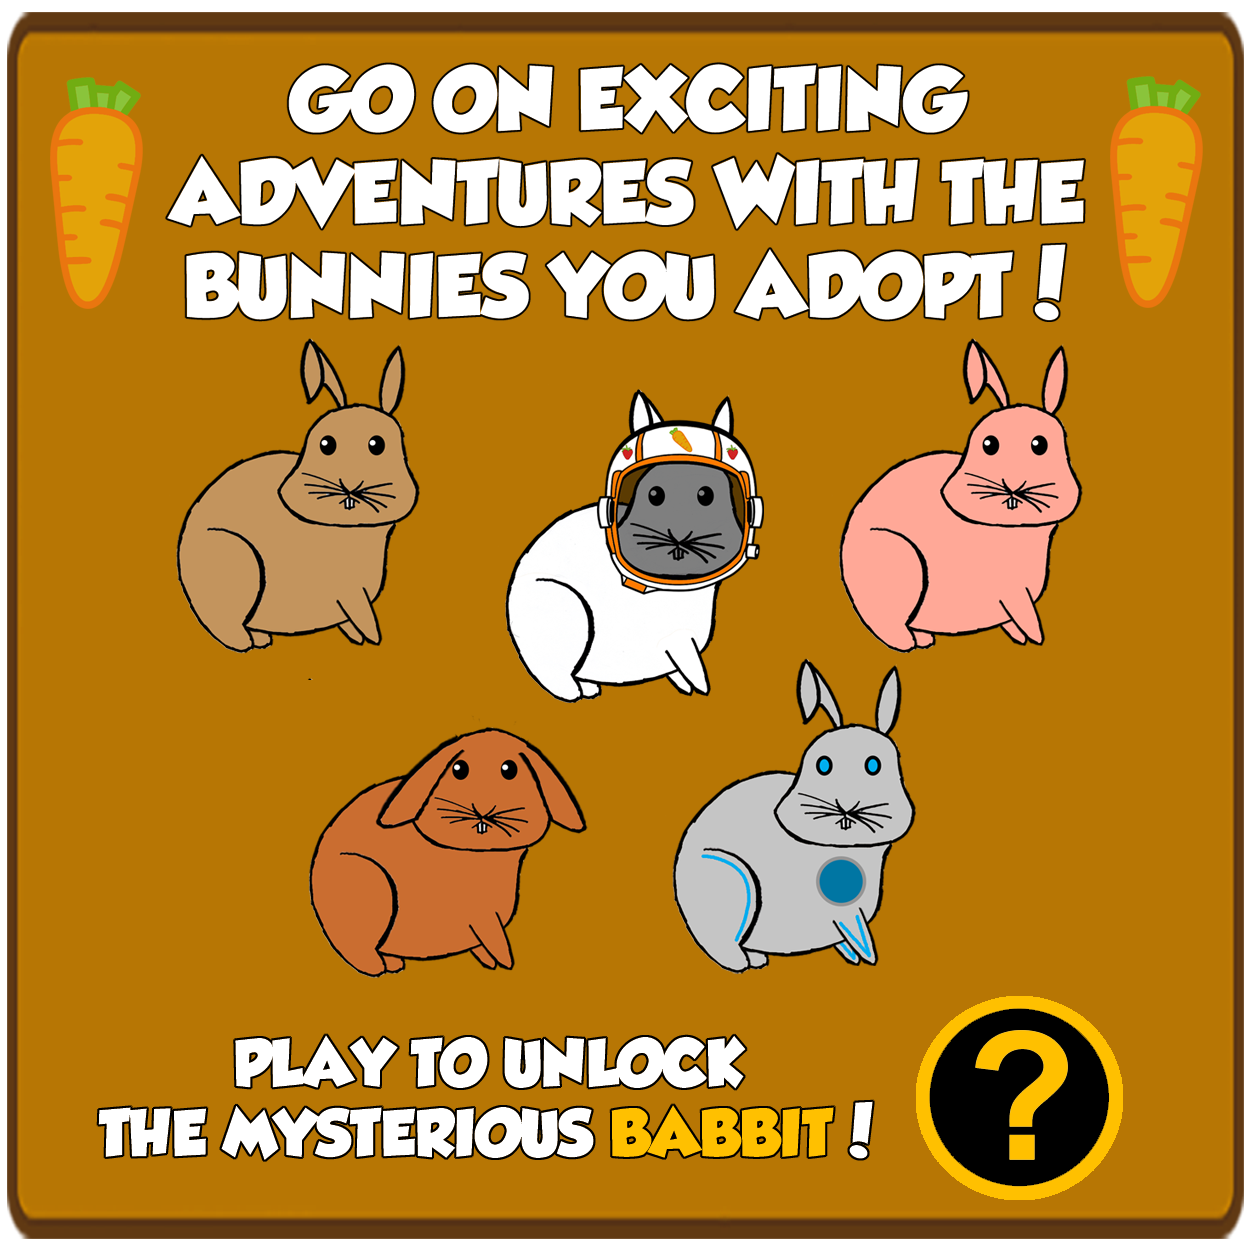 Bunnies for Adoption!